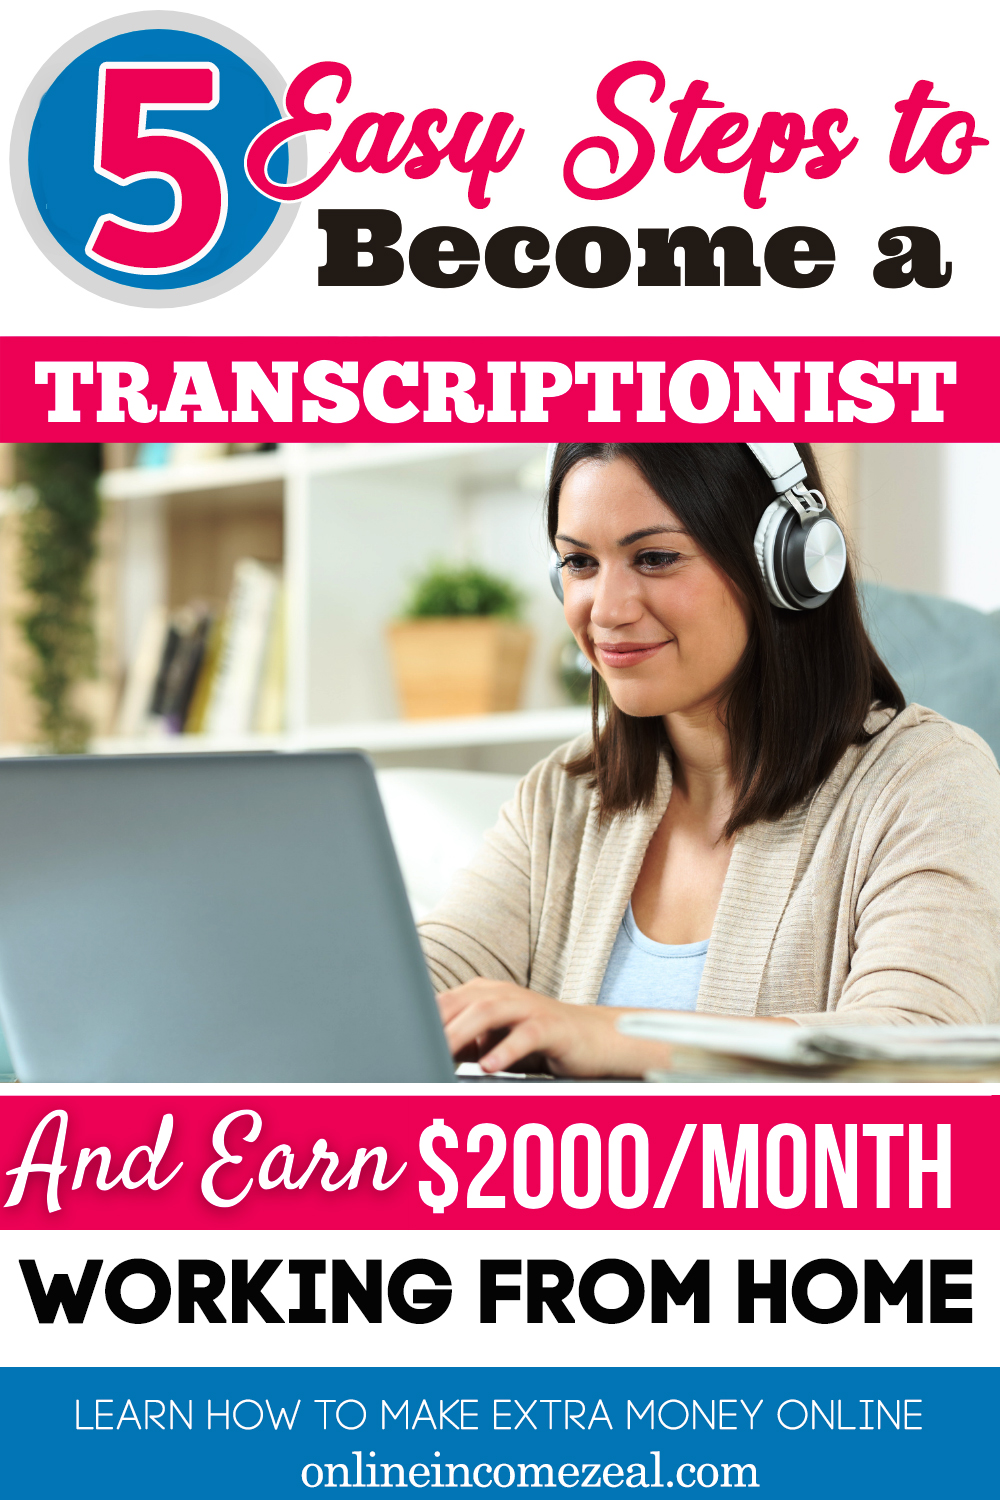 5 ways to become a transcriptionist